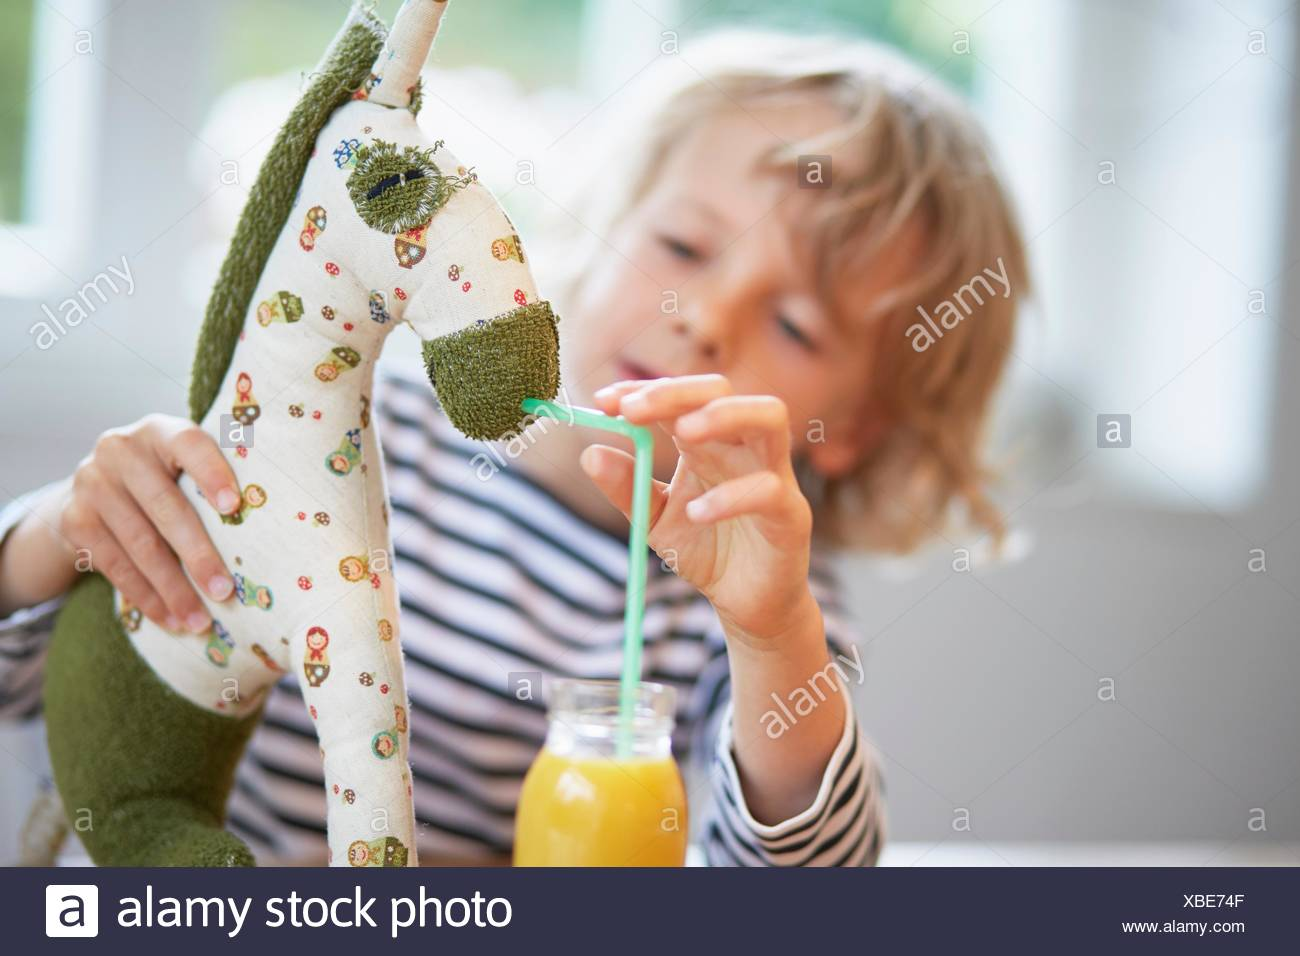 Young boy pretending to feed drink to soft toy - Stock Image